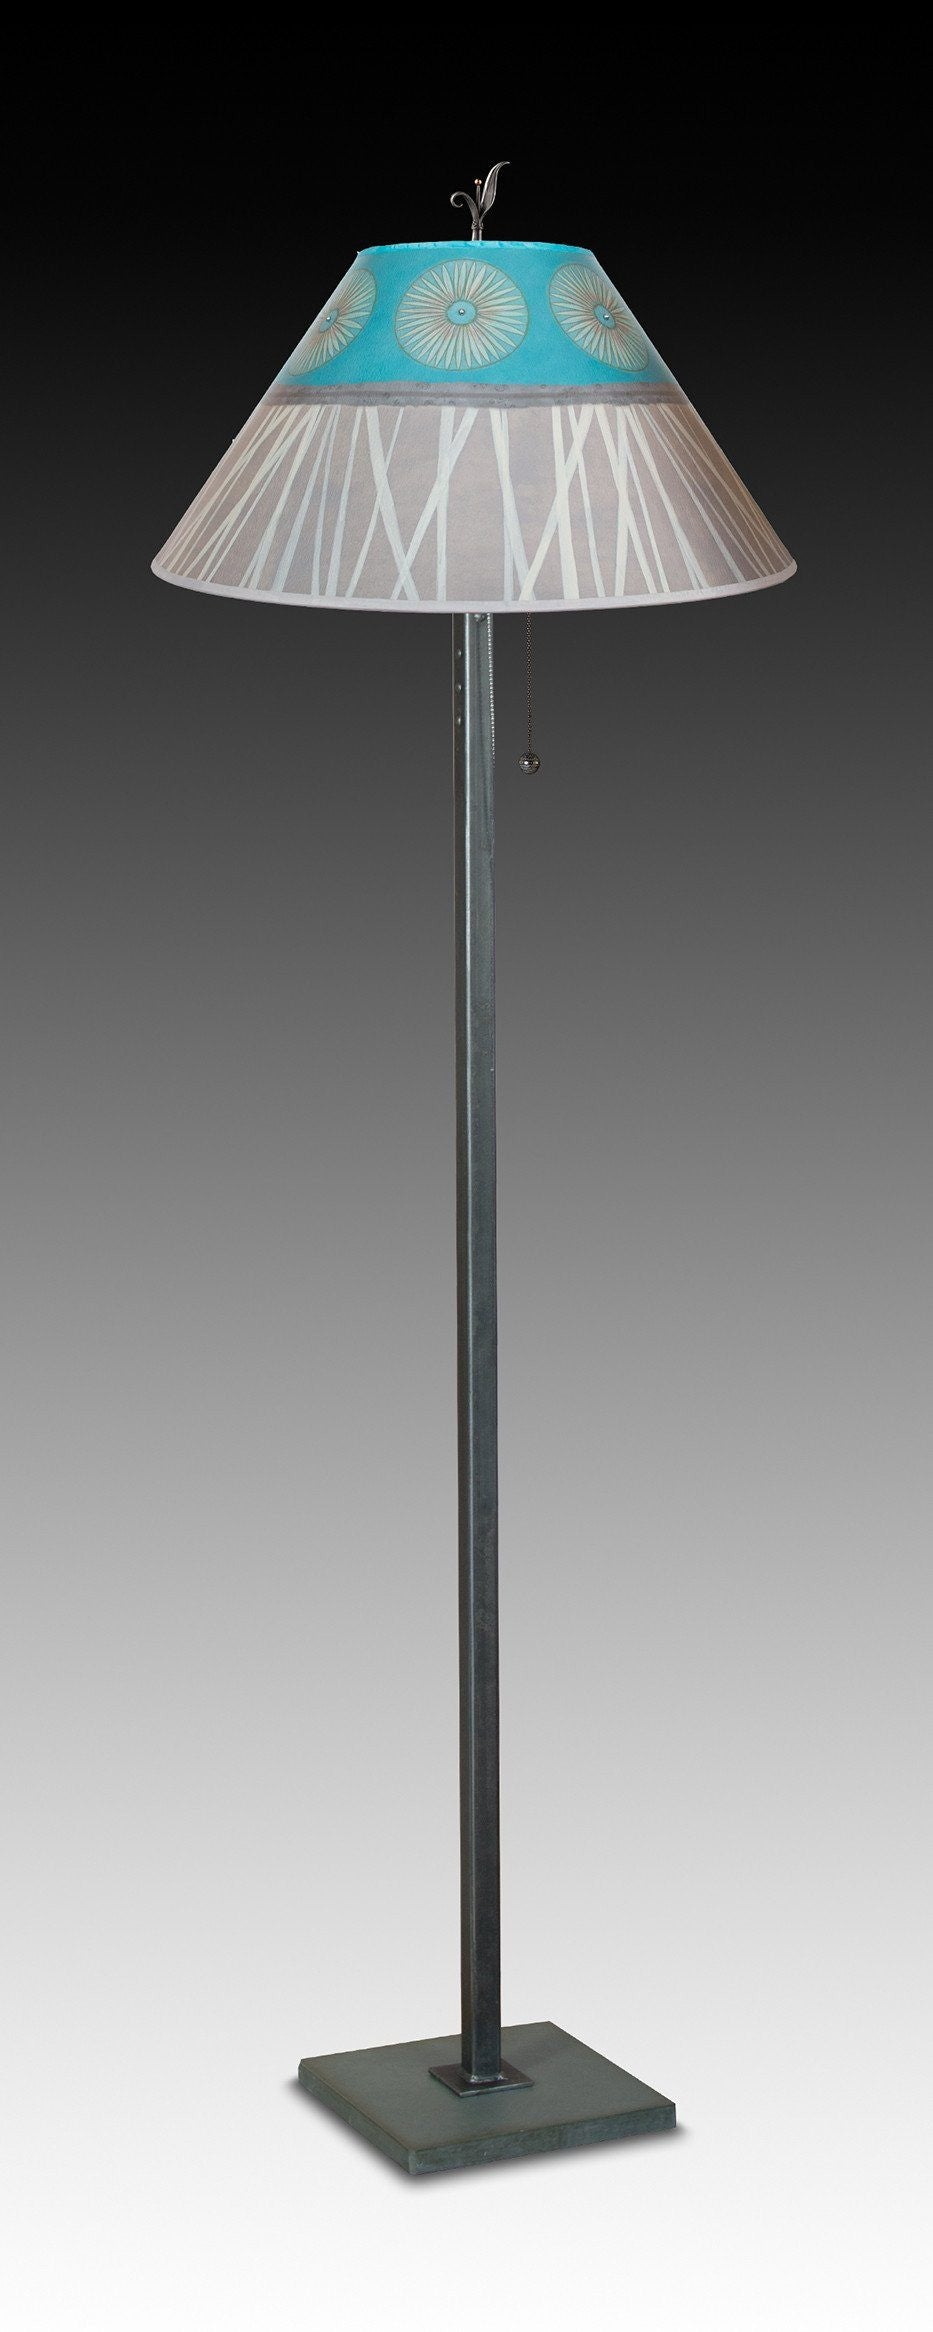 Steel Floor Lamp on Italian Marble with Large Conical Shade in Pool